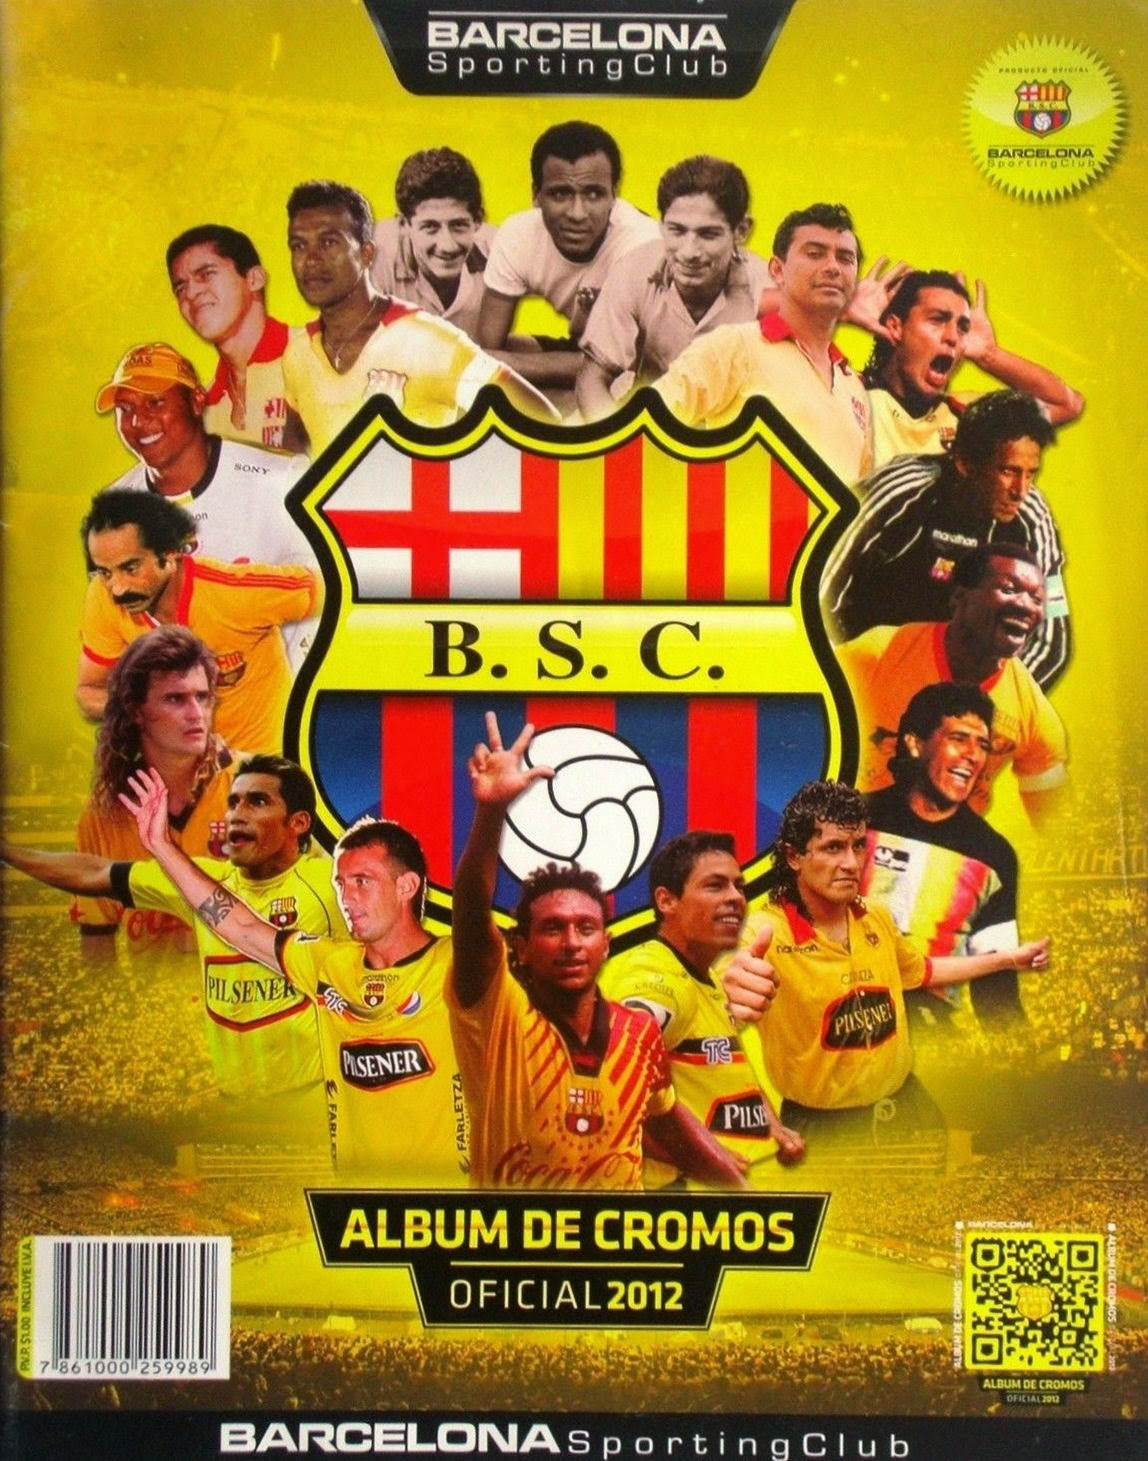 Football Cartophilic Info Exchange Unknown Issuer Ecuador Barcelona Sporting Club